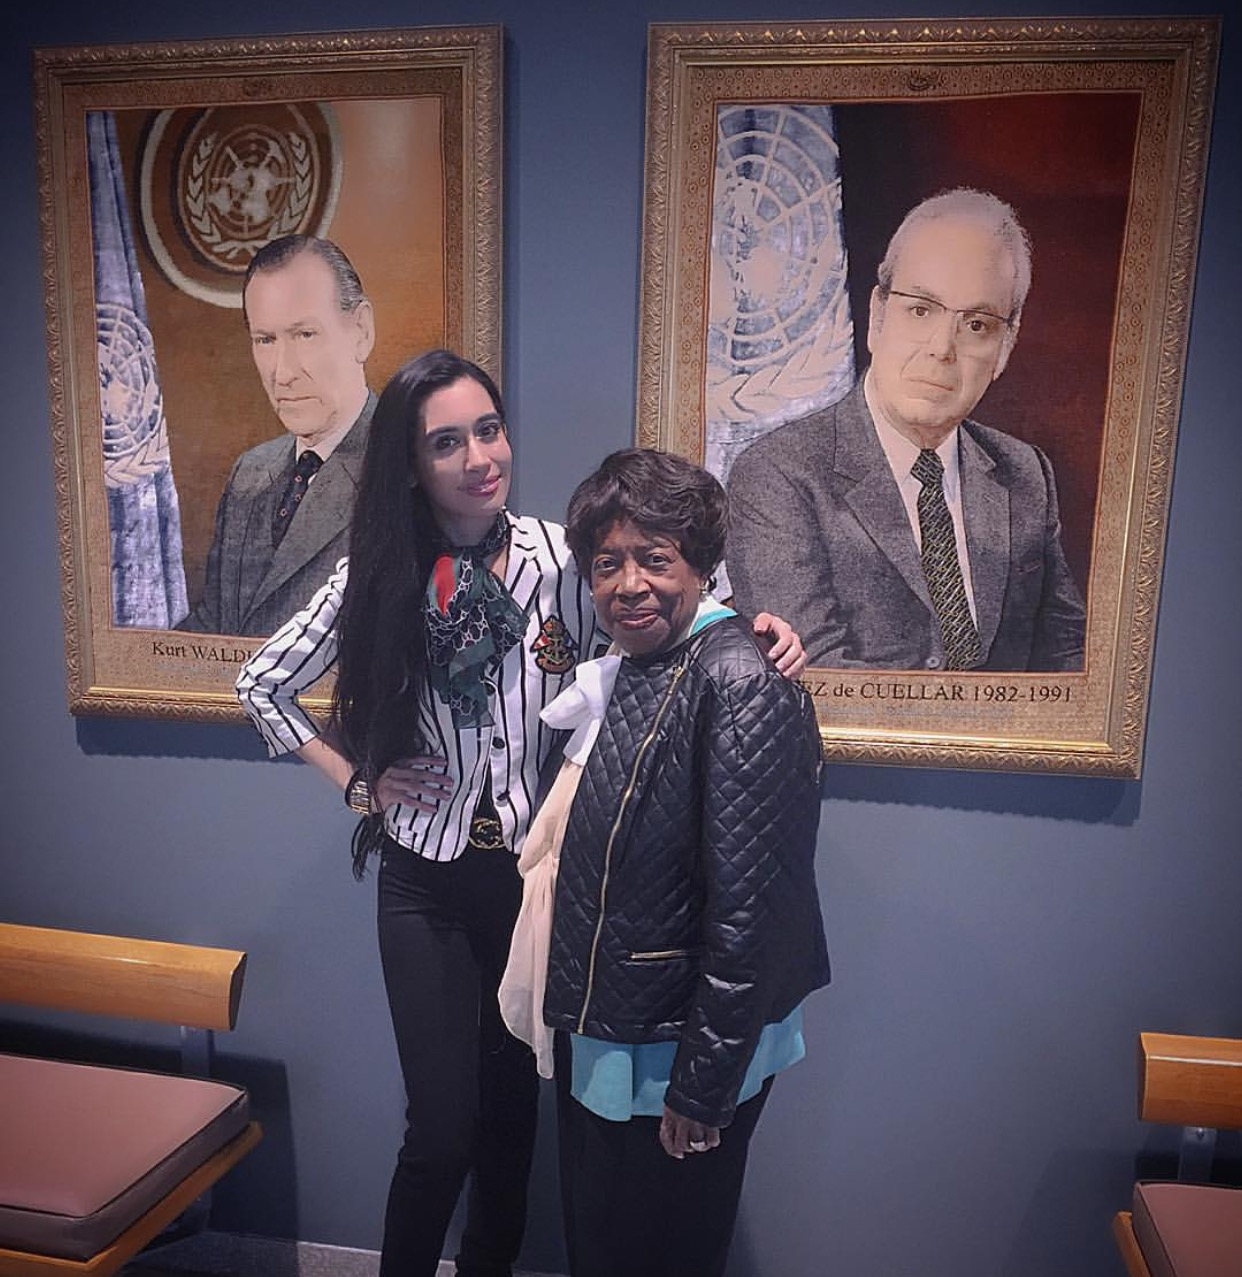 In The Hall Of Secretary Generals at The United Nations Headquarters in New York City, with newly retired NCWUS President the beautiful Mary E. Singletary. This hall contains the portrait of every sitting Secretary General in history including notables such as Boutros Boutros Ghali and Ban Ki-Moon.